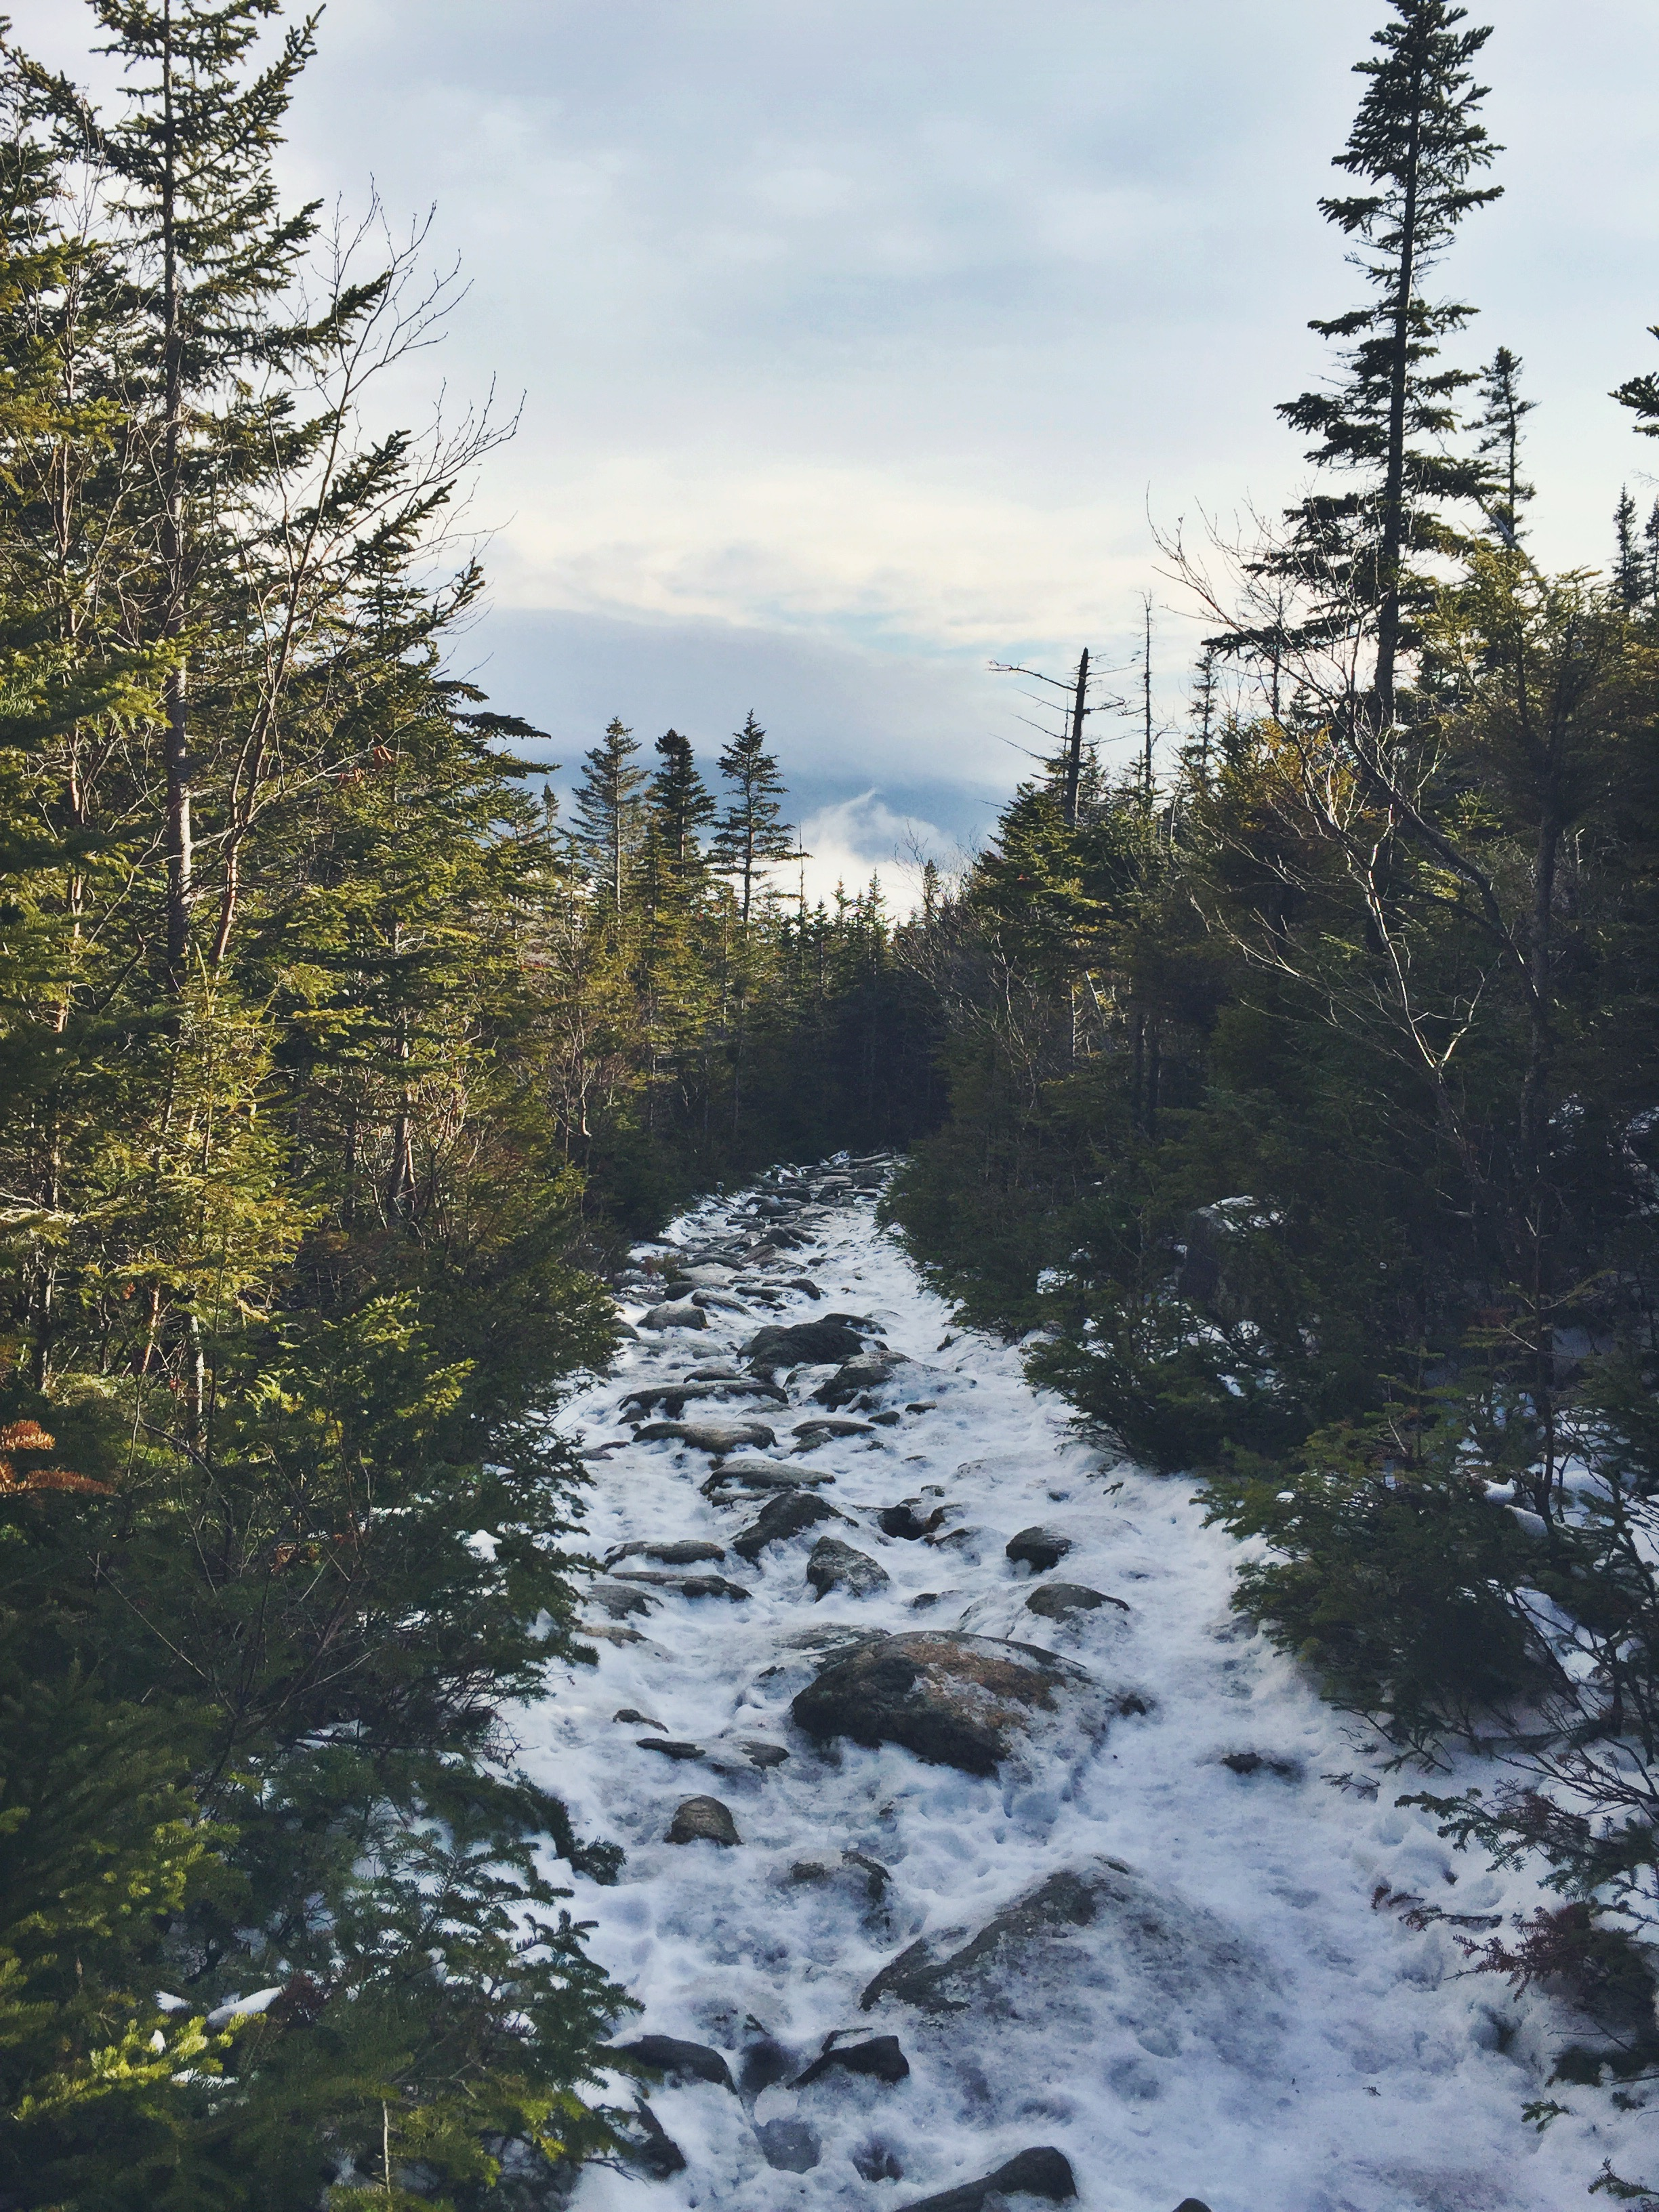 The last few miles back to Pinkham Notch are steady and quite easy, allowing Teton the option to jog down the mountainside.